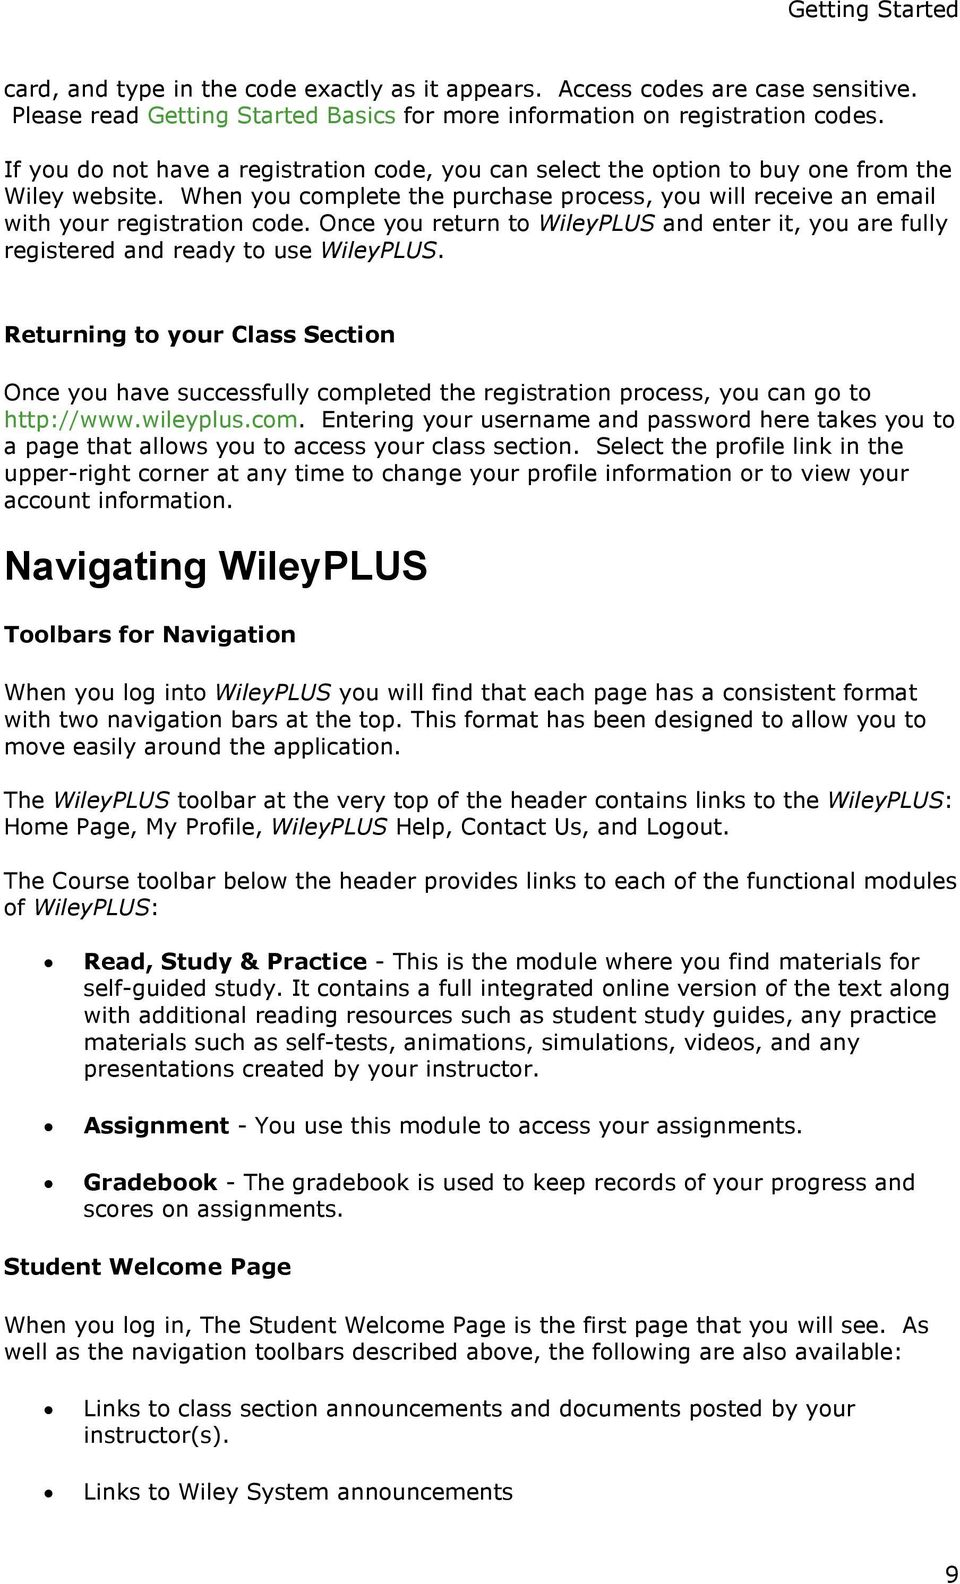 Once you return to WileyPLUS and enter it, you are fully registered and  ready to